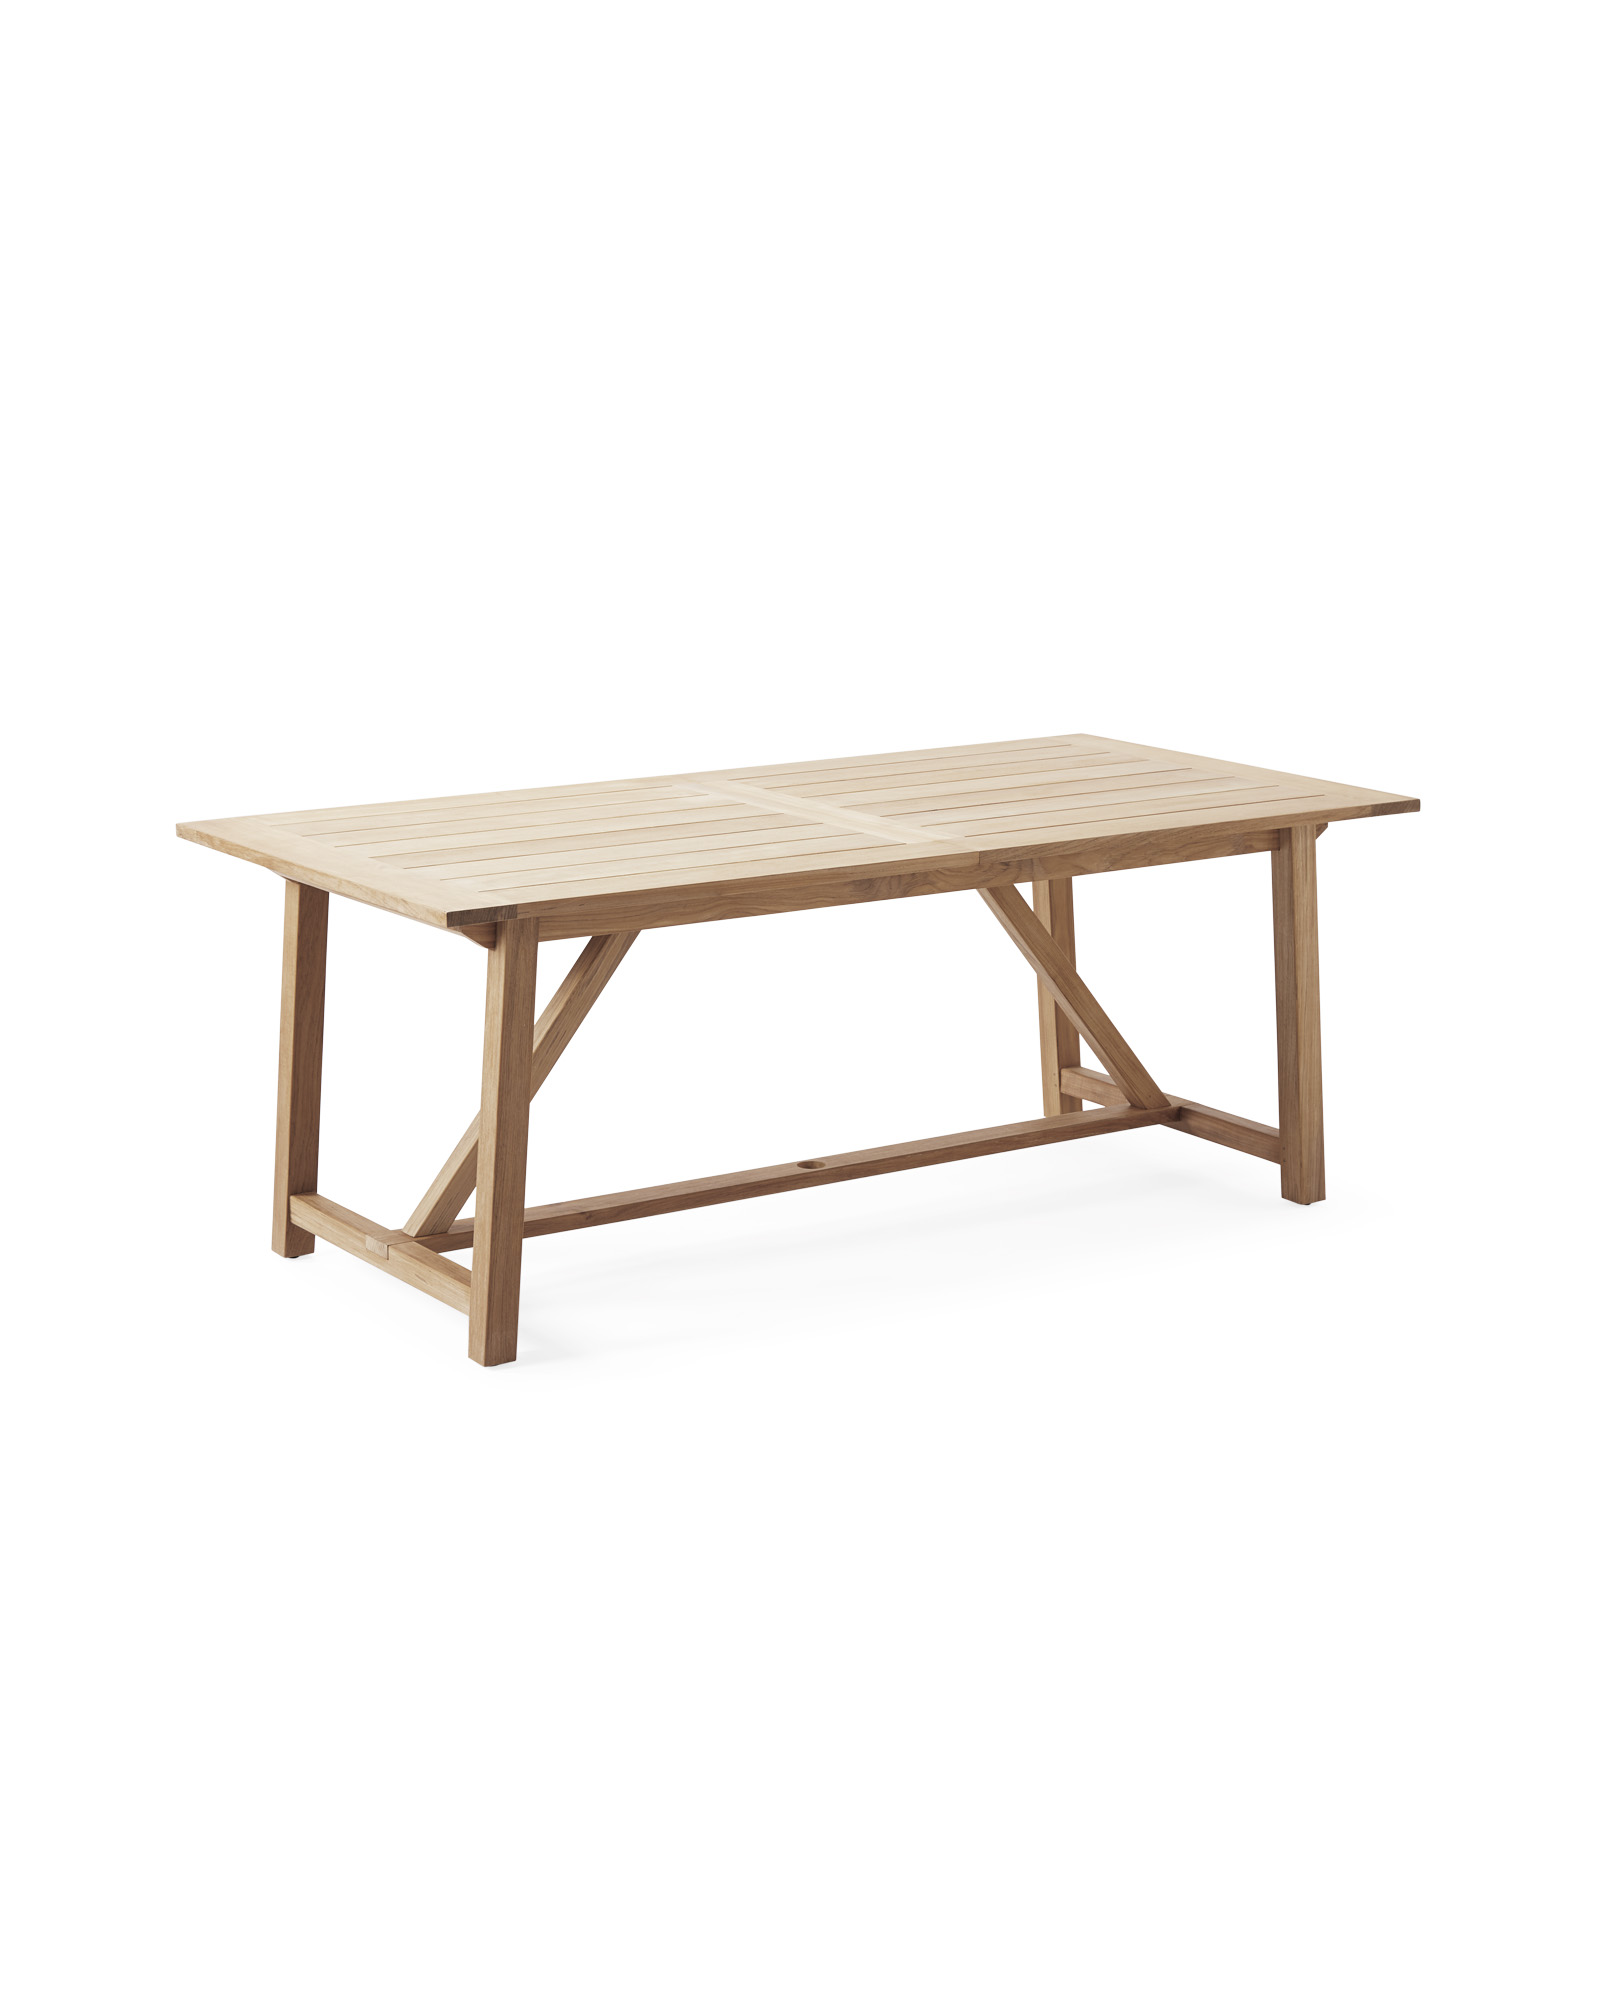 Crosby Teak Expandable Dining Table Natural Serena Lily